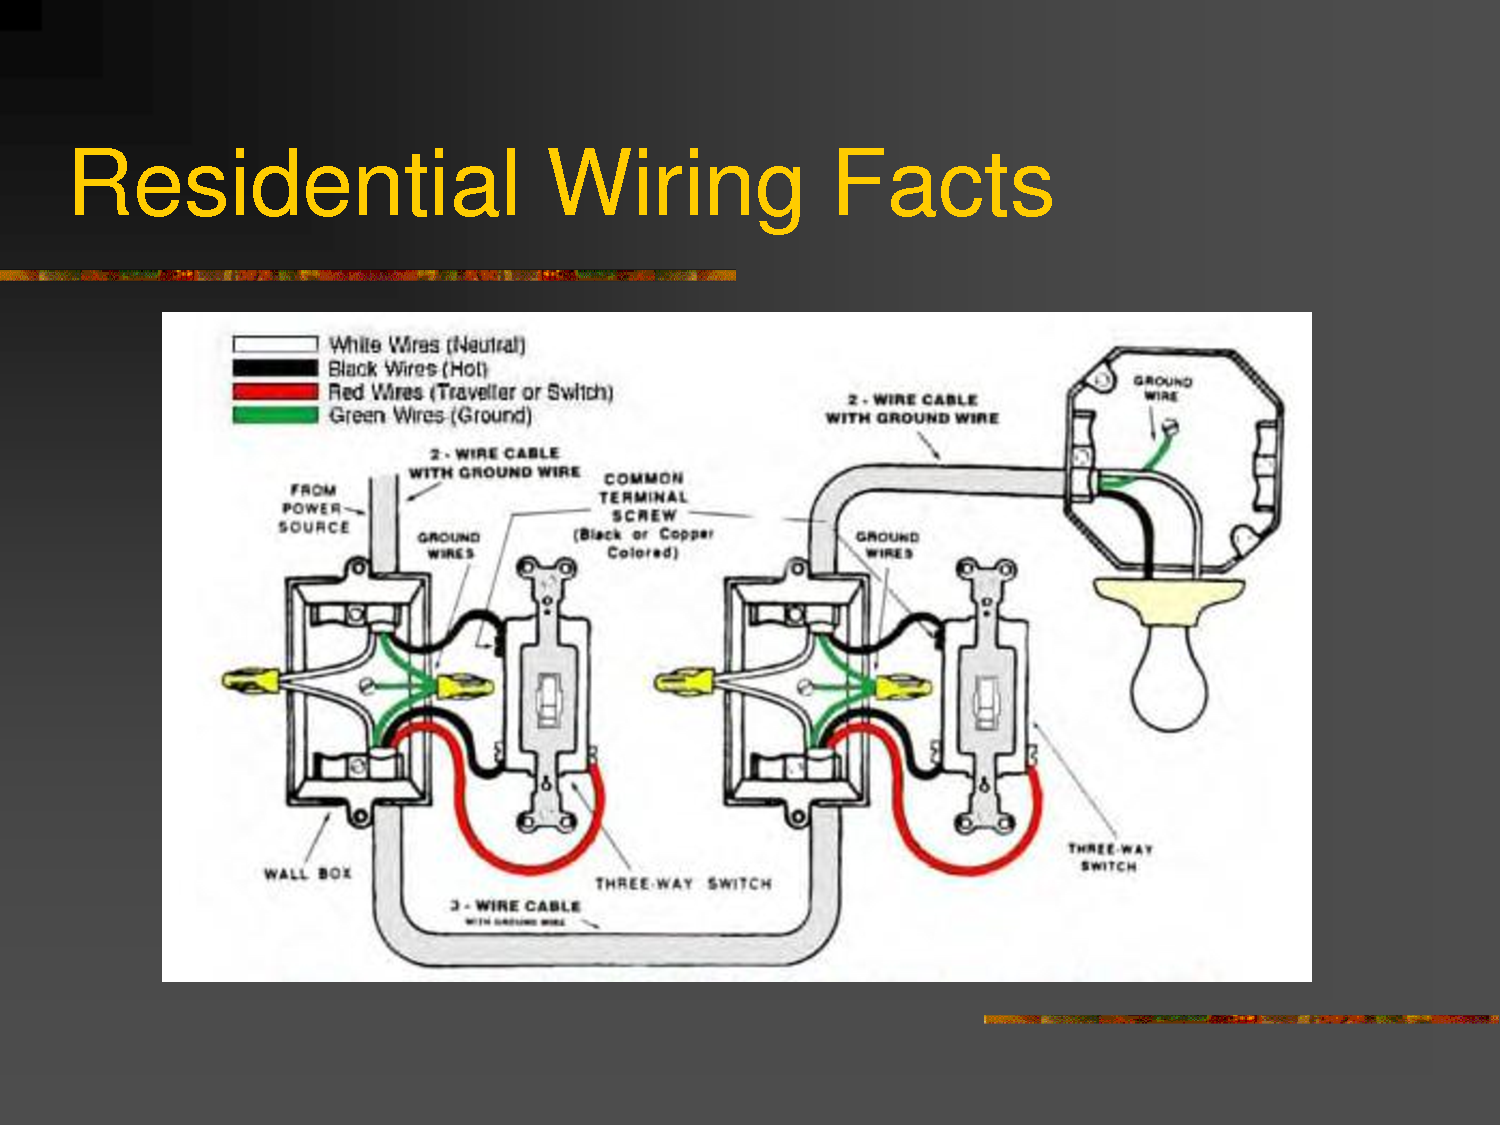 4 best images of residential wiring diagrams house electrical rh pinterest com electrical wiring residential 19th edition electrical wiring residential book